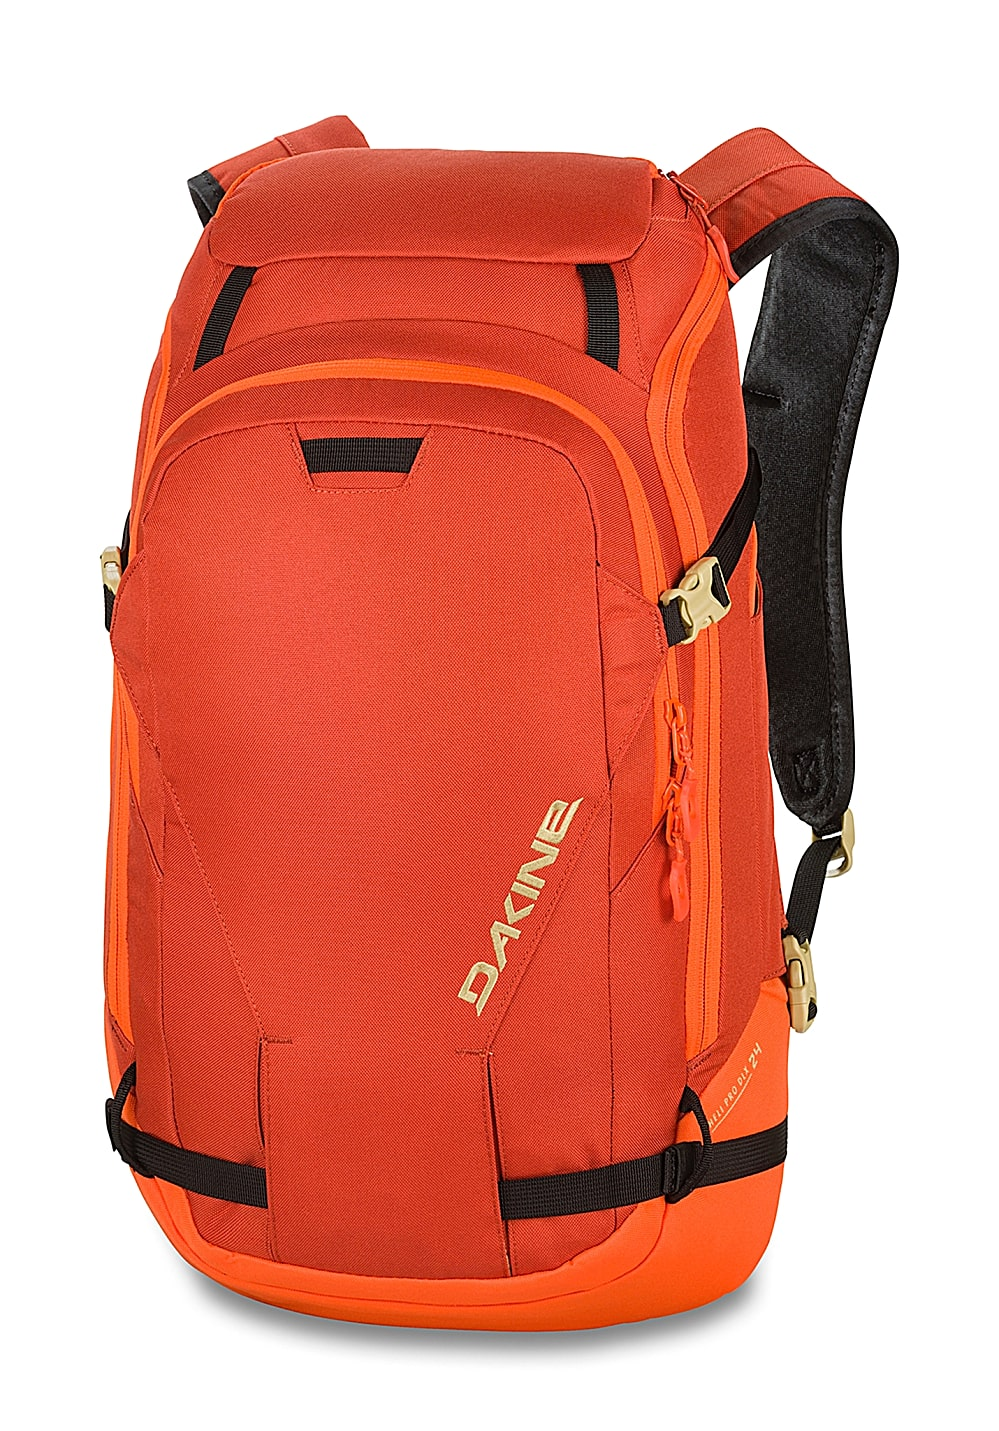 dakine heli pro dlx with Shopzilla Emsrc Pc Product Color Pup E 16 Pup Id 434029033436 on 231337923946 besides Dakine Womens Heli Pro DLX Snow Backpack 18L Highland WCamelbak  64215 also Search in addition Dakine Heli Pro 20l Gifford likewise Shopzilla emsrc pc product color pup e 16 pup id 434029033436.